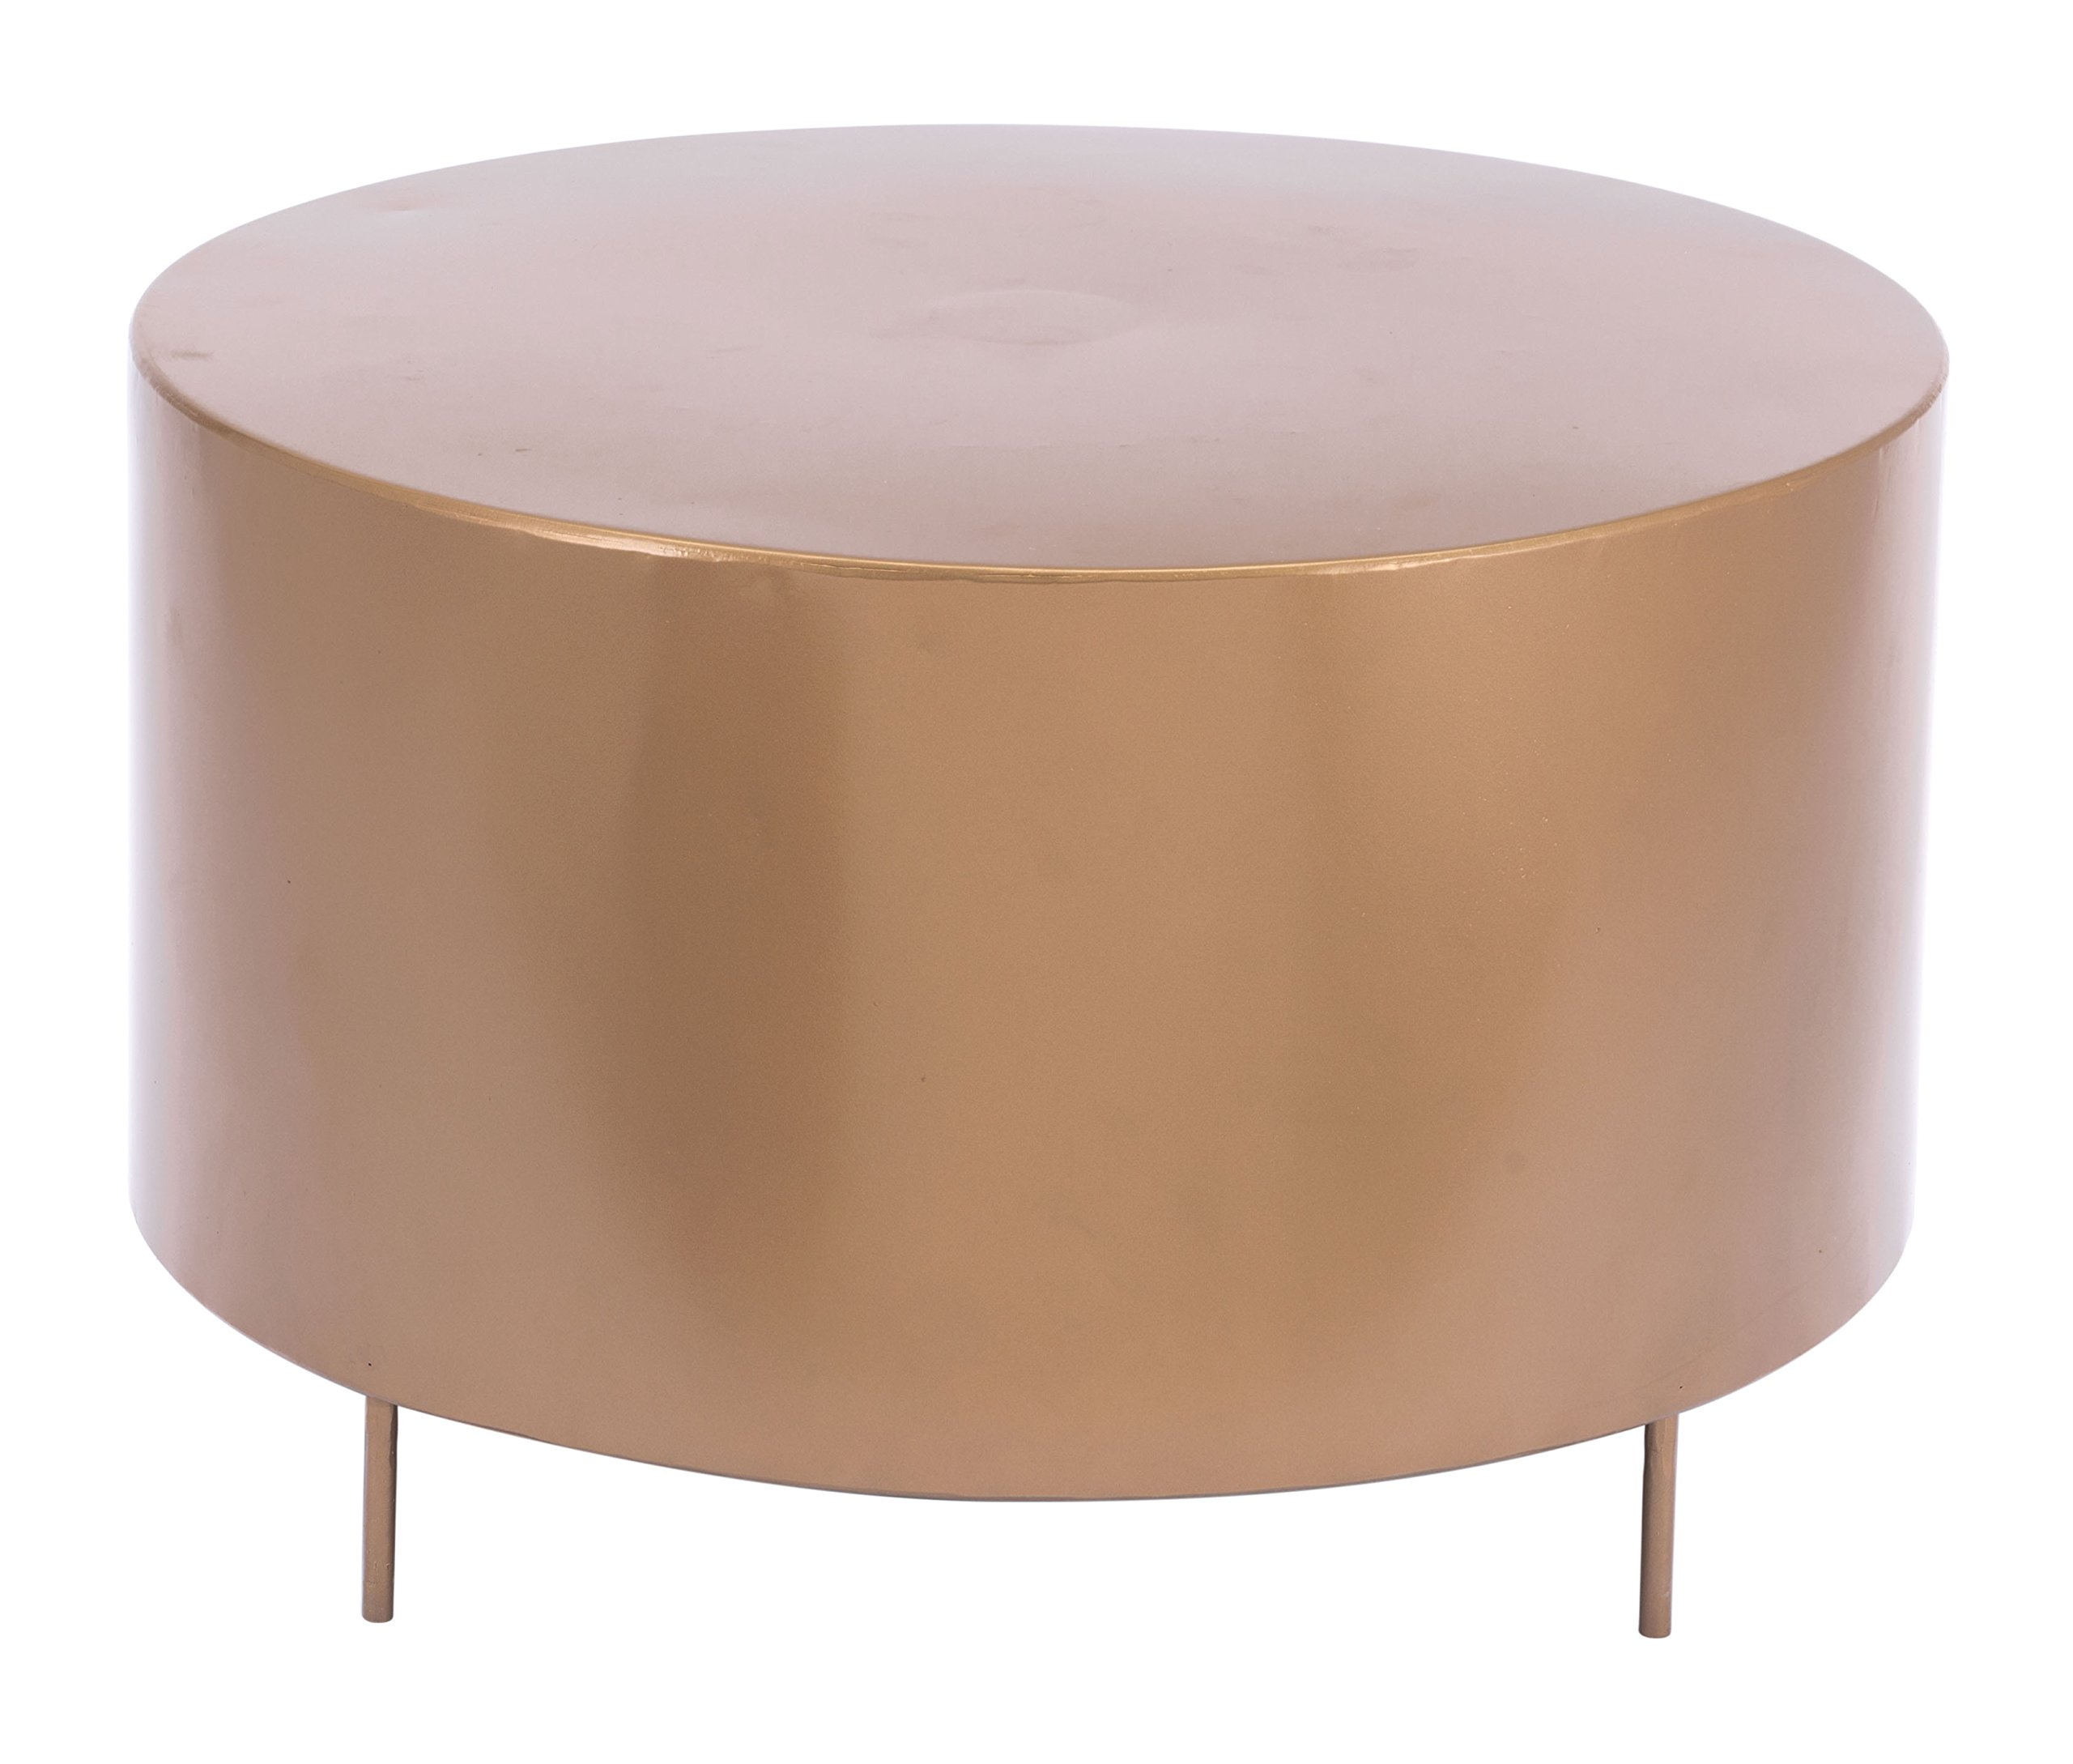 Zuo A11543 Coffee Table Gold - Overall Dimensions: 23.6W X 23.6D X 15.4H Frame construction: Steel Finish: Gold - living-room-furniture, living-room, coffee-tables - 81RFnARayoL -